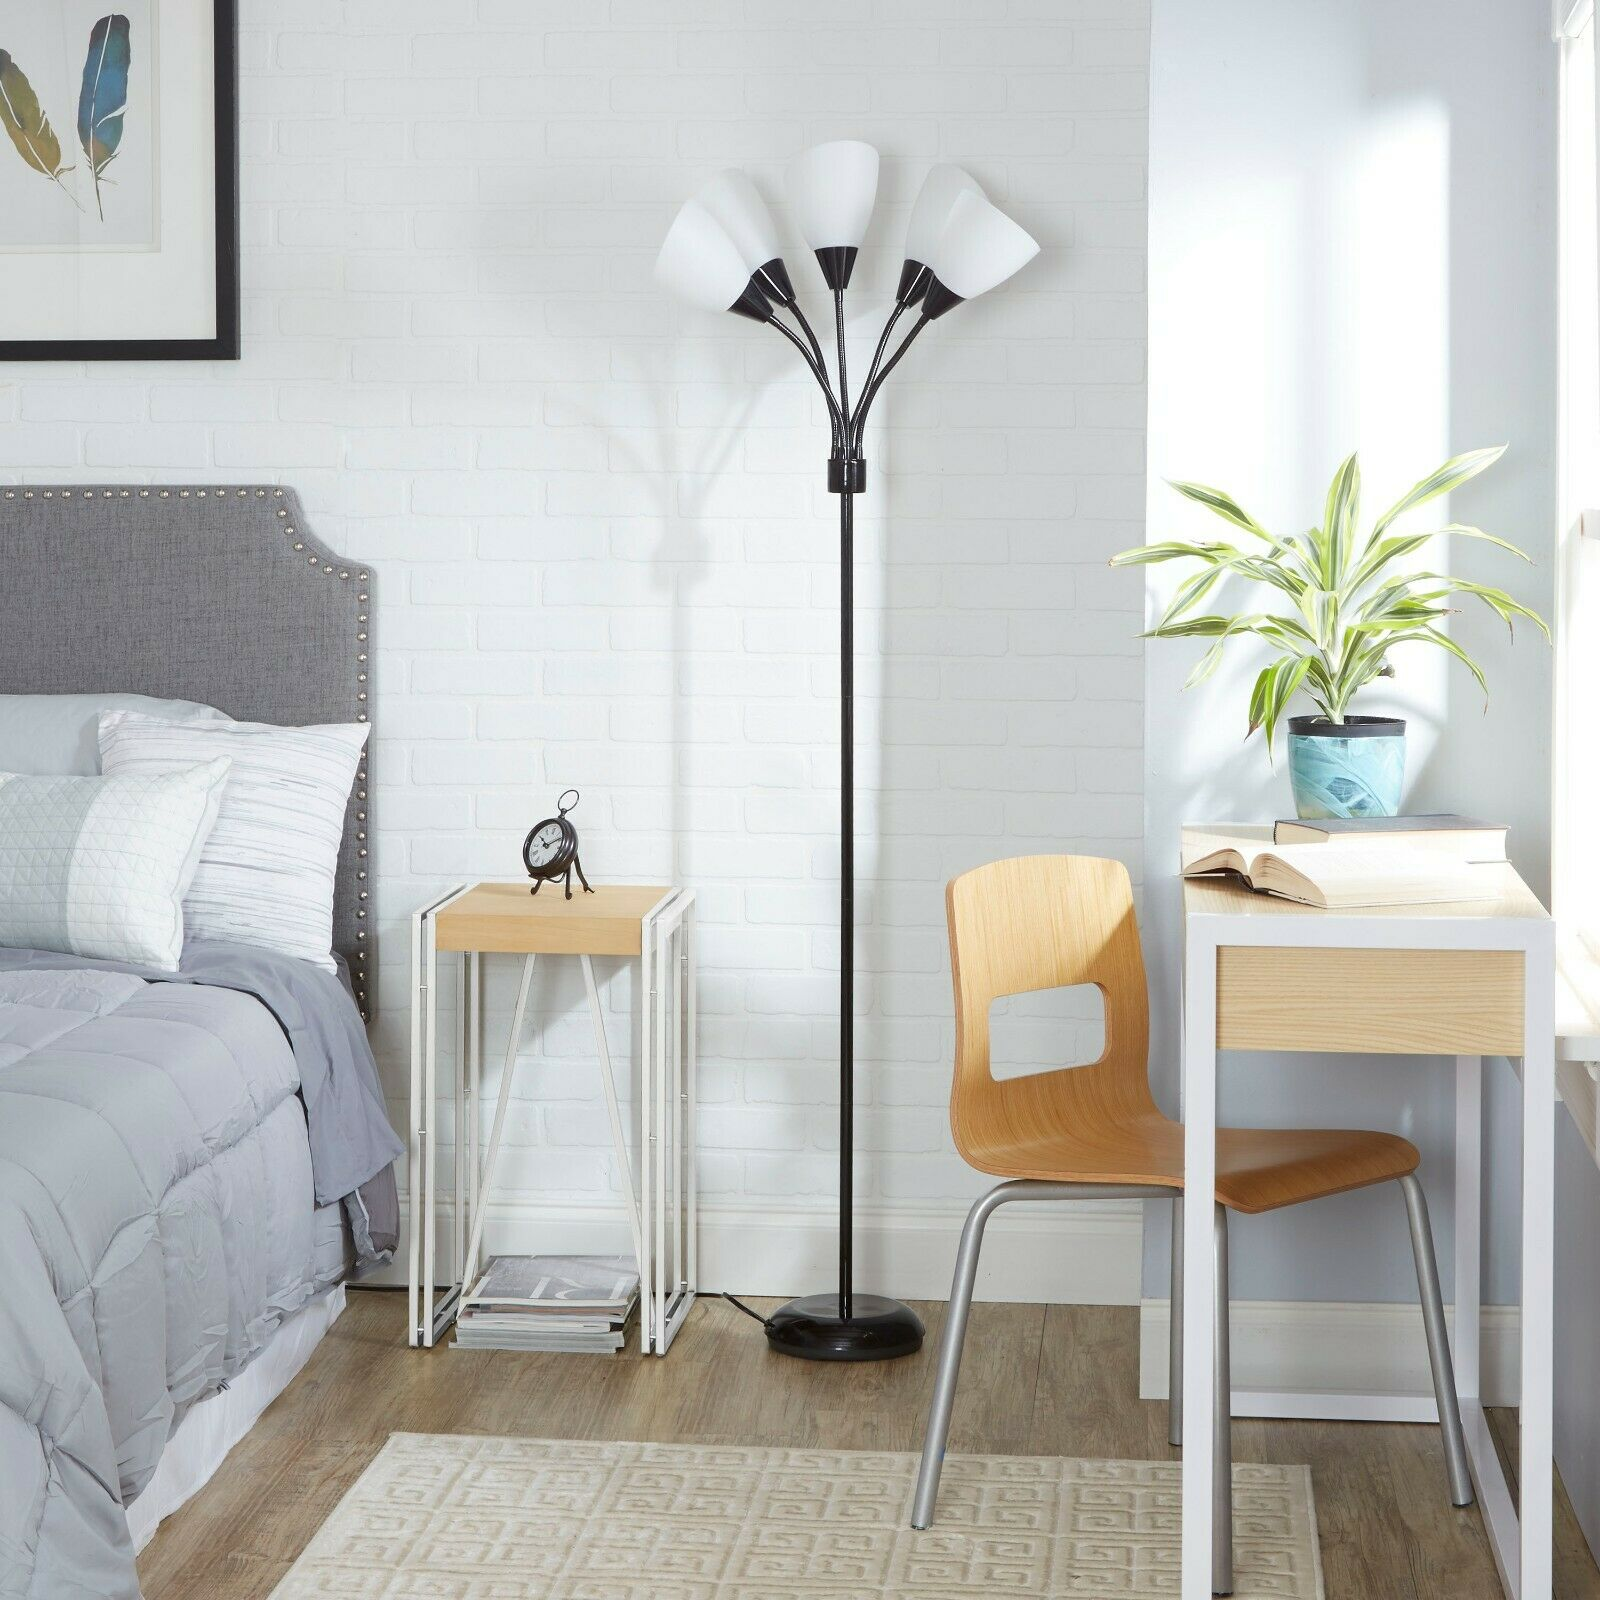 Floor Lamp Medusa 5-Light Standing Lamp Multi Head Standing